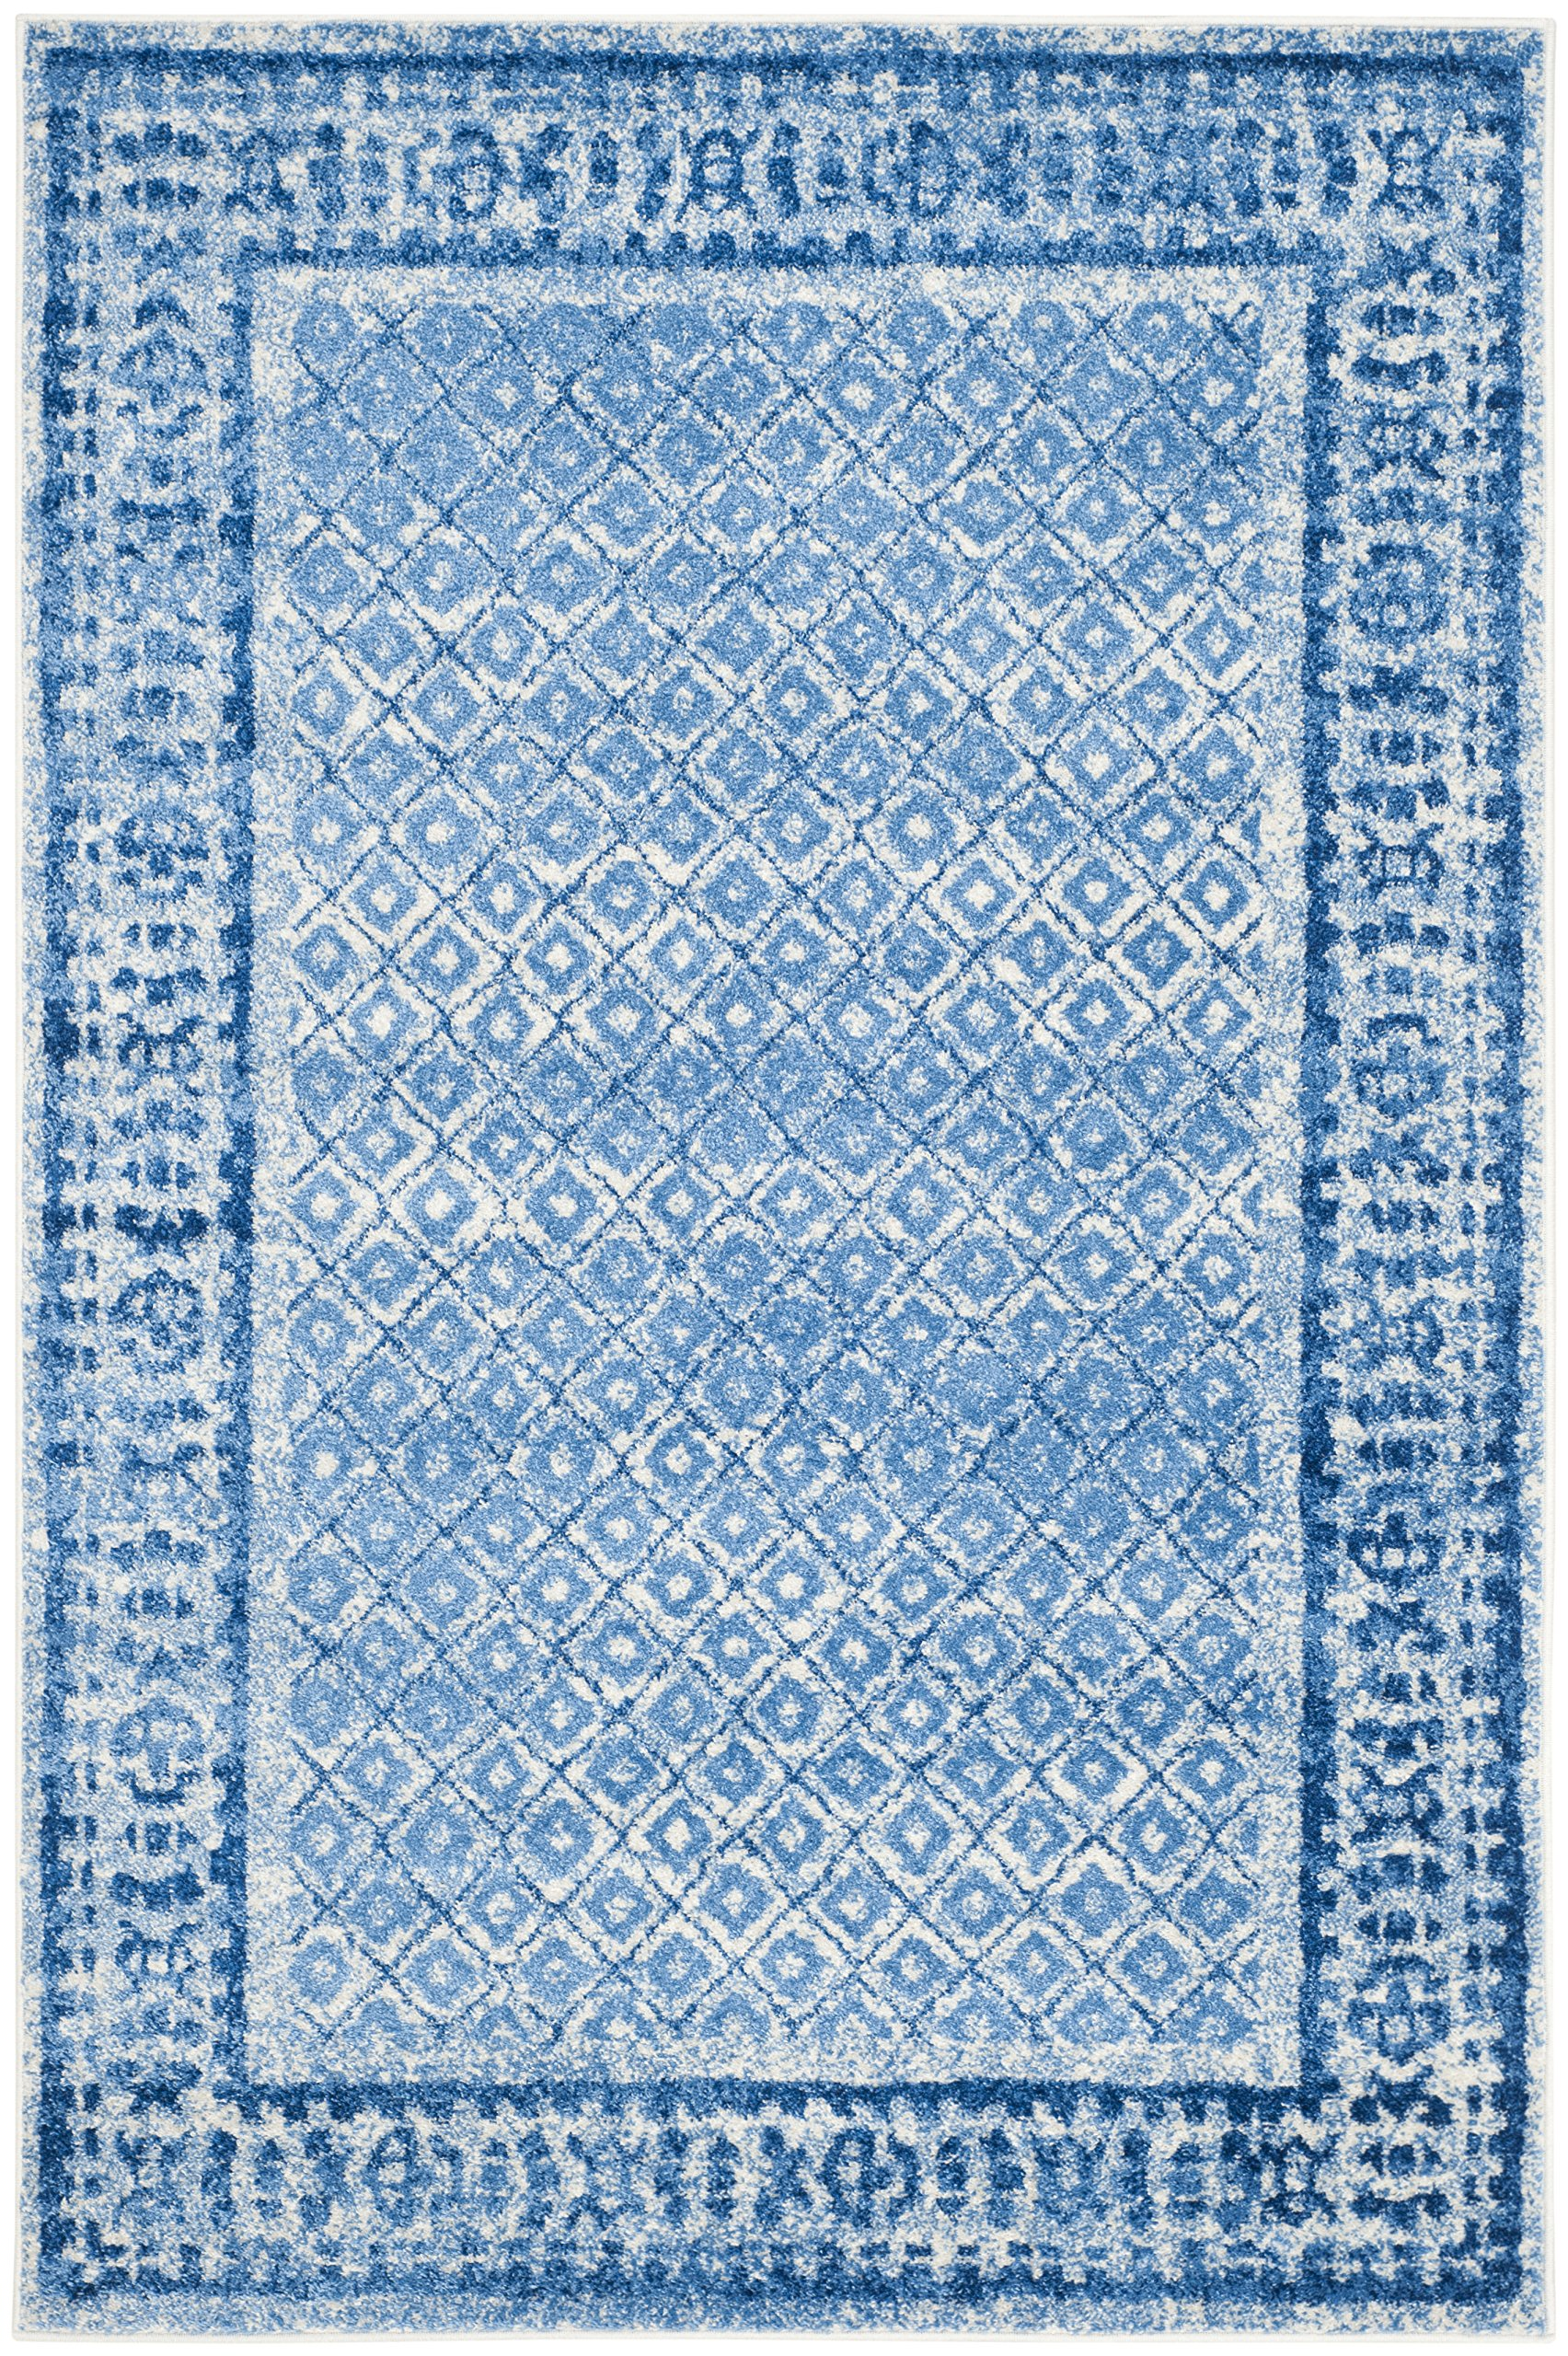 "Safavieh Adirondack Collection ADR110D Silver and Blue Vintage Distressed Area Rug (2'6"" x 4') - High-quality polypropylene pile fiber, known for its legendary durability and endurance, adds longevity to these rugs Refined power-loomed construction allows for an intricate design and a virtually non-shedding rug Works well with both vintage and contemporary styles of décor - living-room-soft-furnishings, living-room, area-rugs - A1NKJvx25YL -"